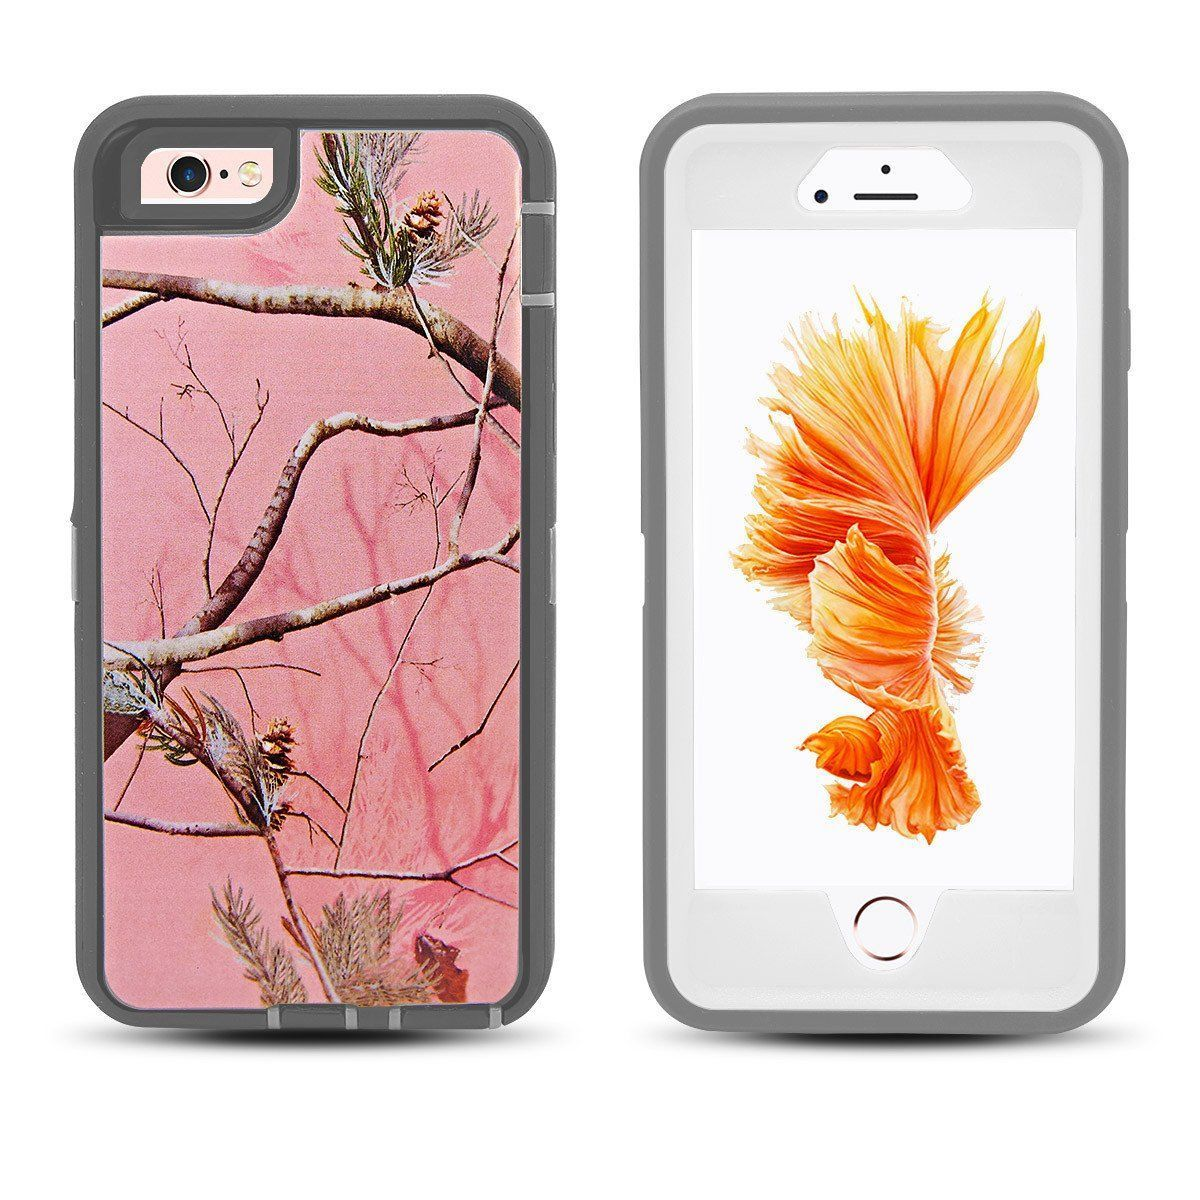 DualPro Protector Case for iPhone 6 Plus - Camouflage Pink